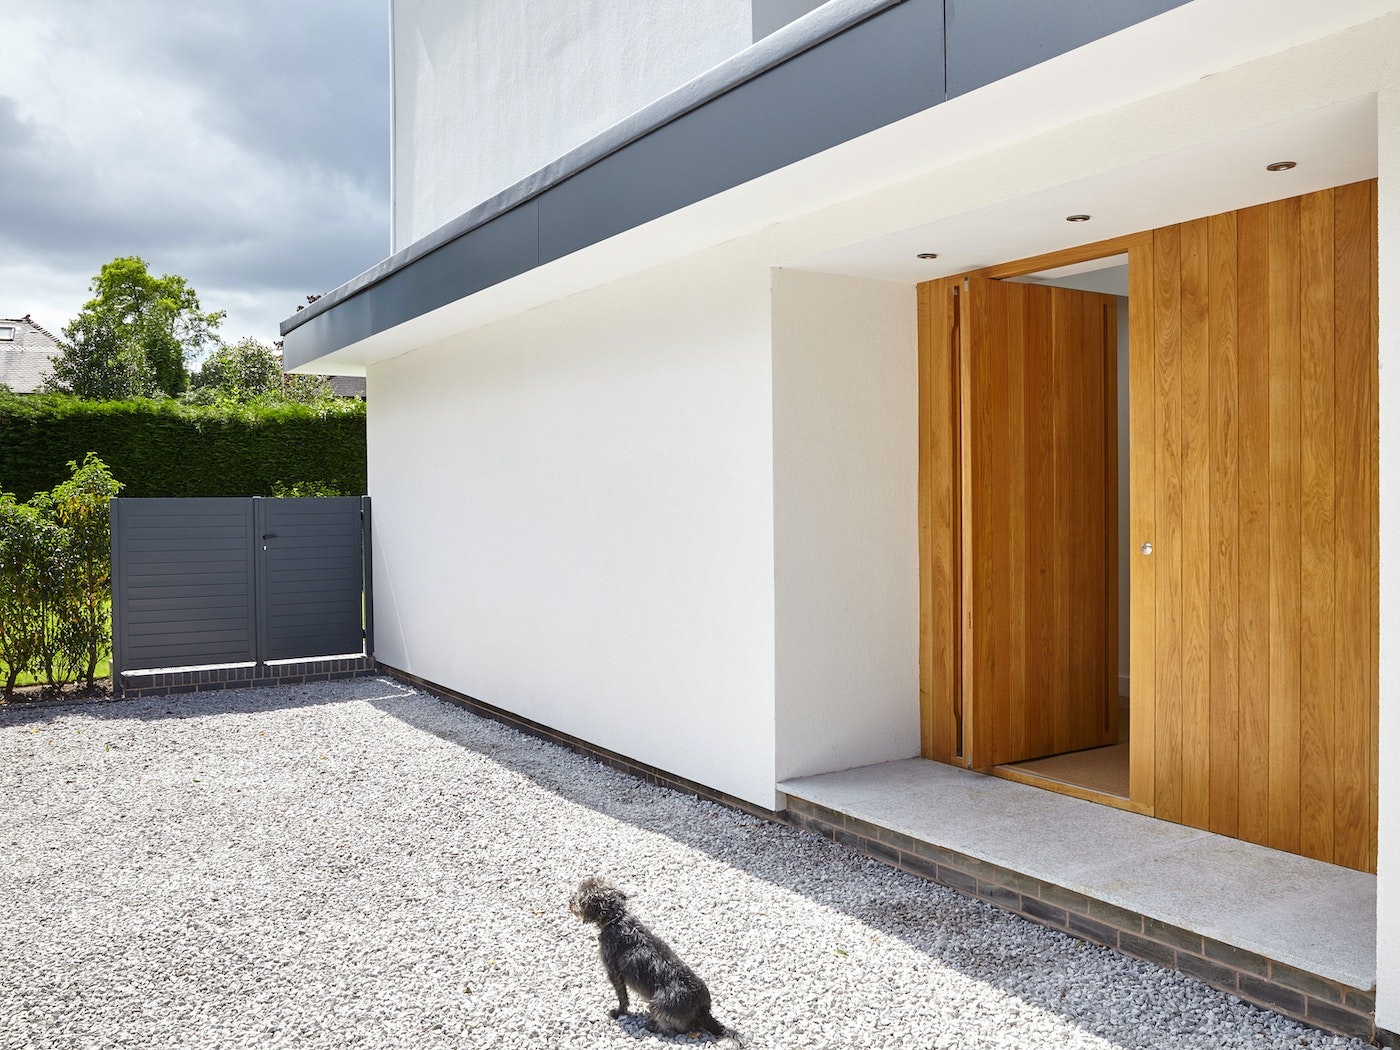 The additional wood side panel gives the impression of a larger entrance